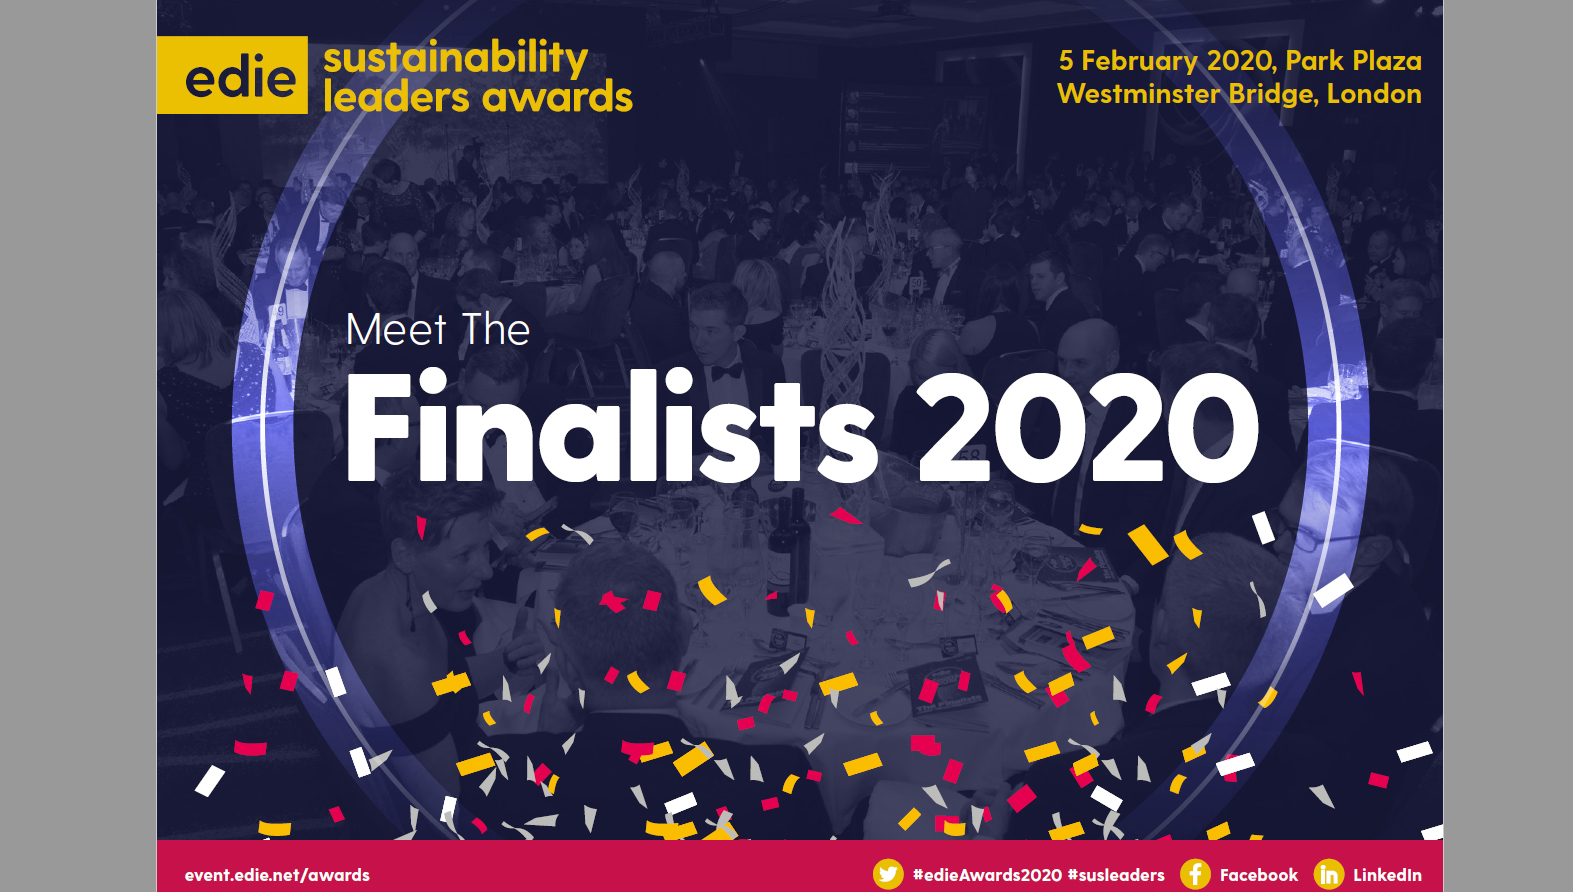 Sustainability Leaders Awards 2020: Meet the Finalists - edie.net